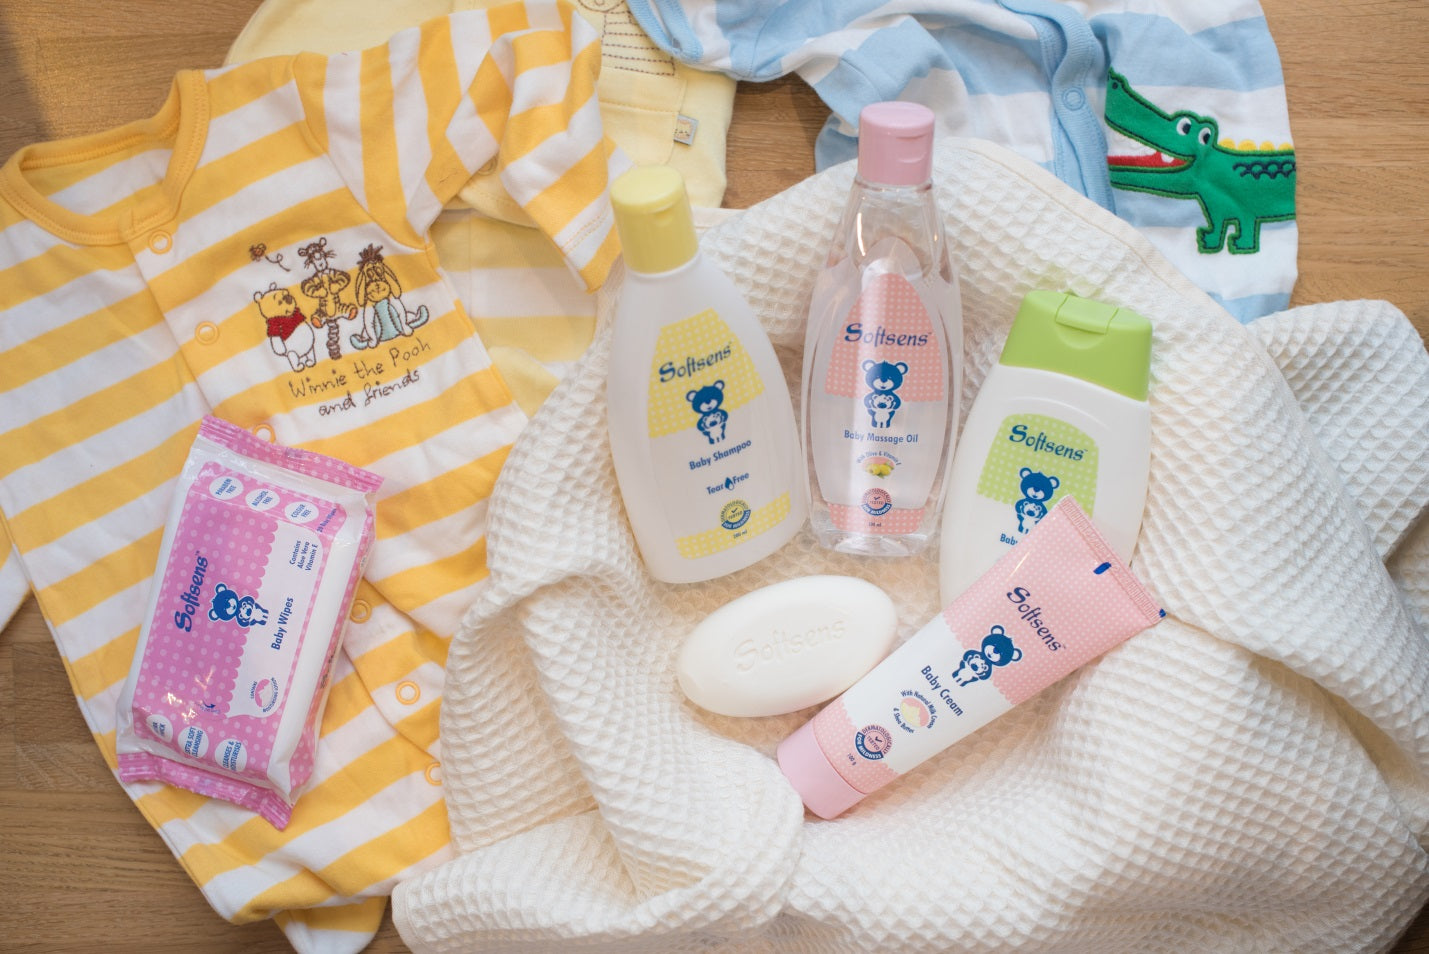 How to Spend Wisely and Save More on Baby Care Essentials